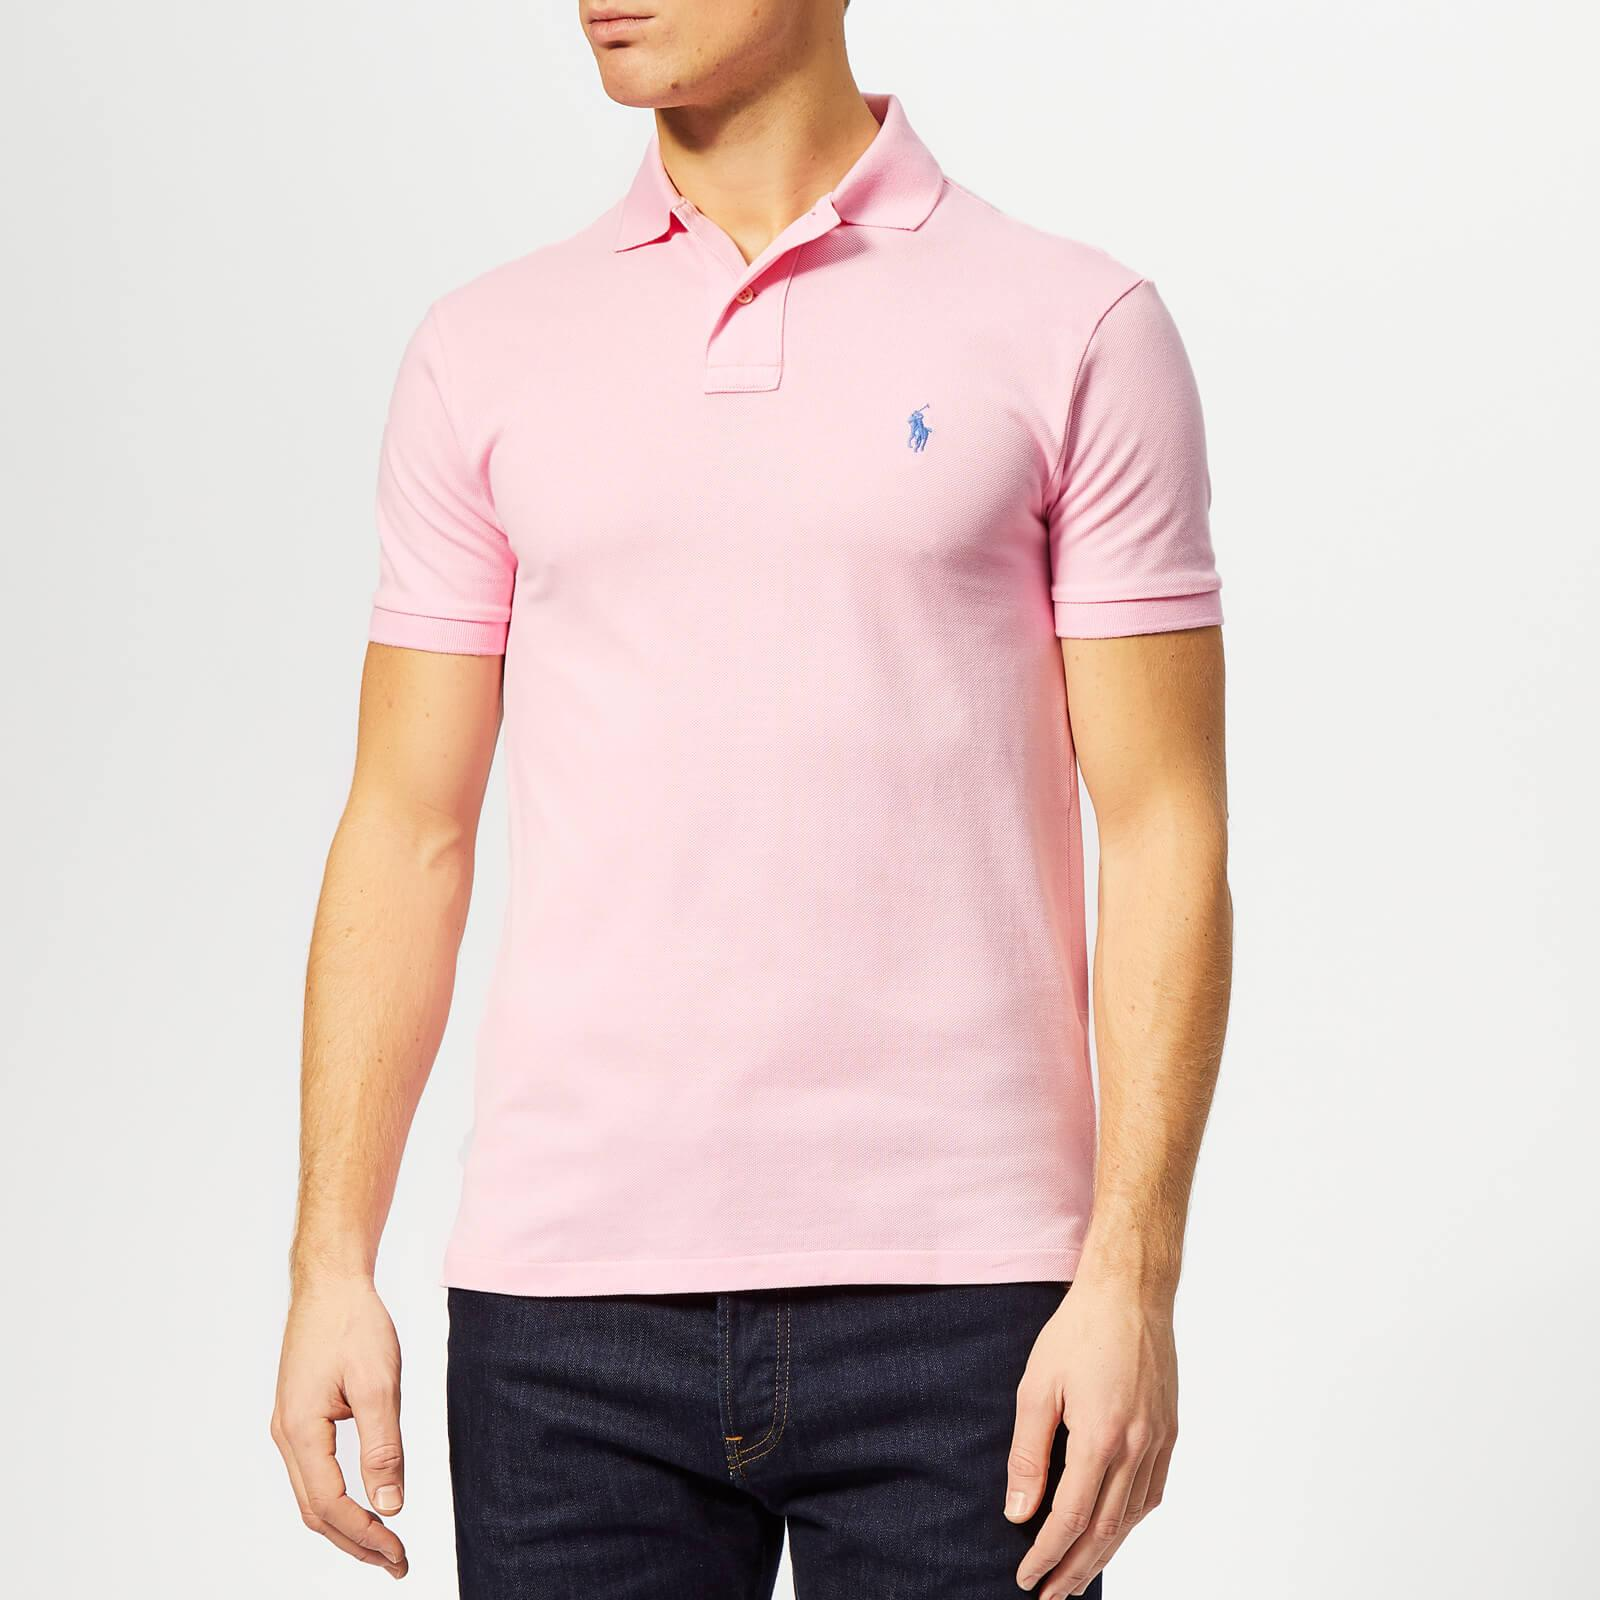 d67512bee Polo Ralph Lauren Basic Pique Slim Fit Polo-shirt in Pink for Men ...